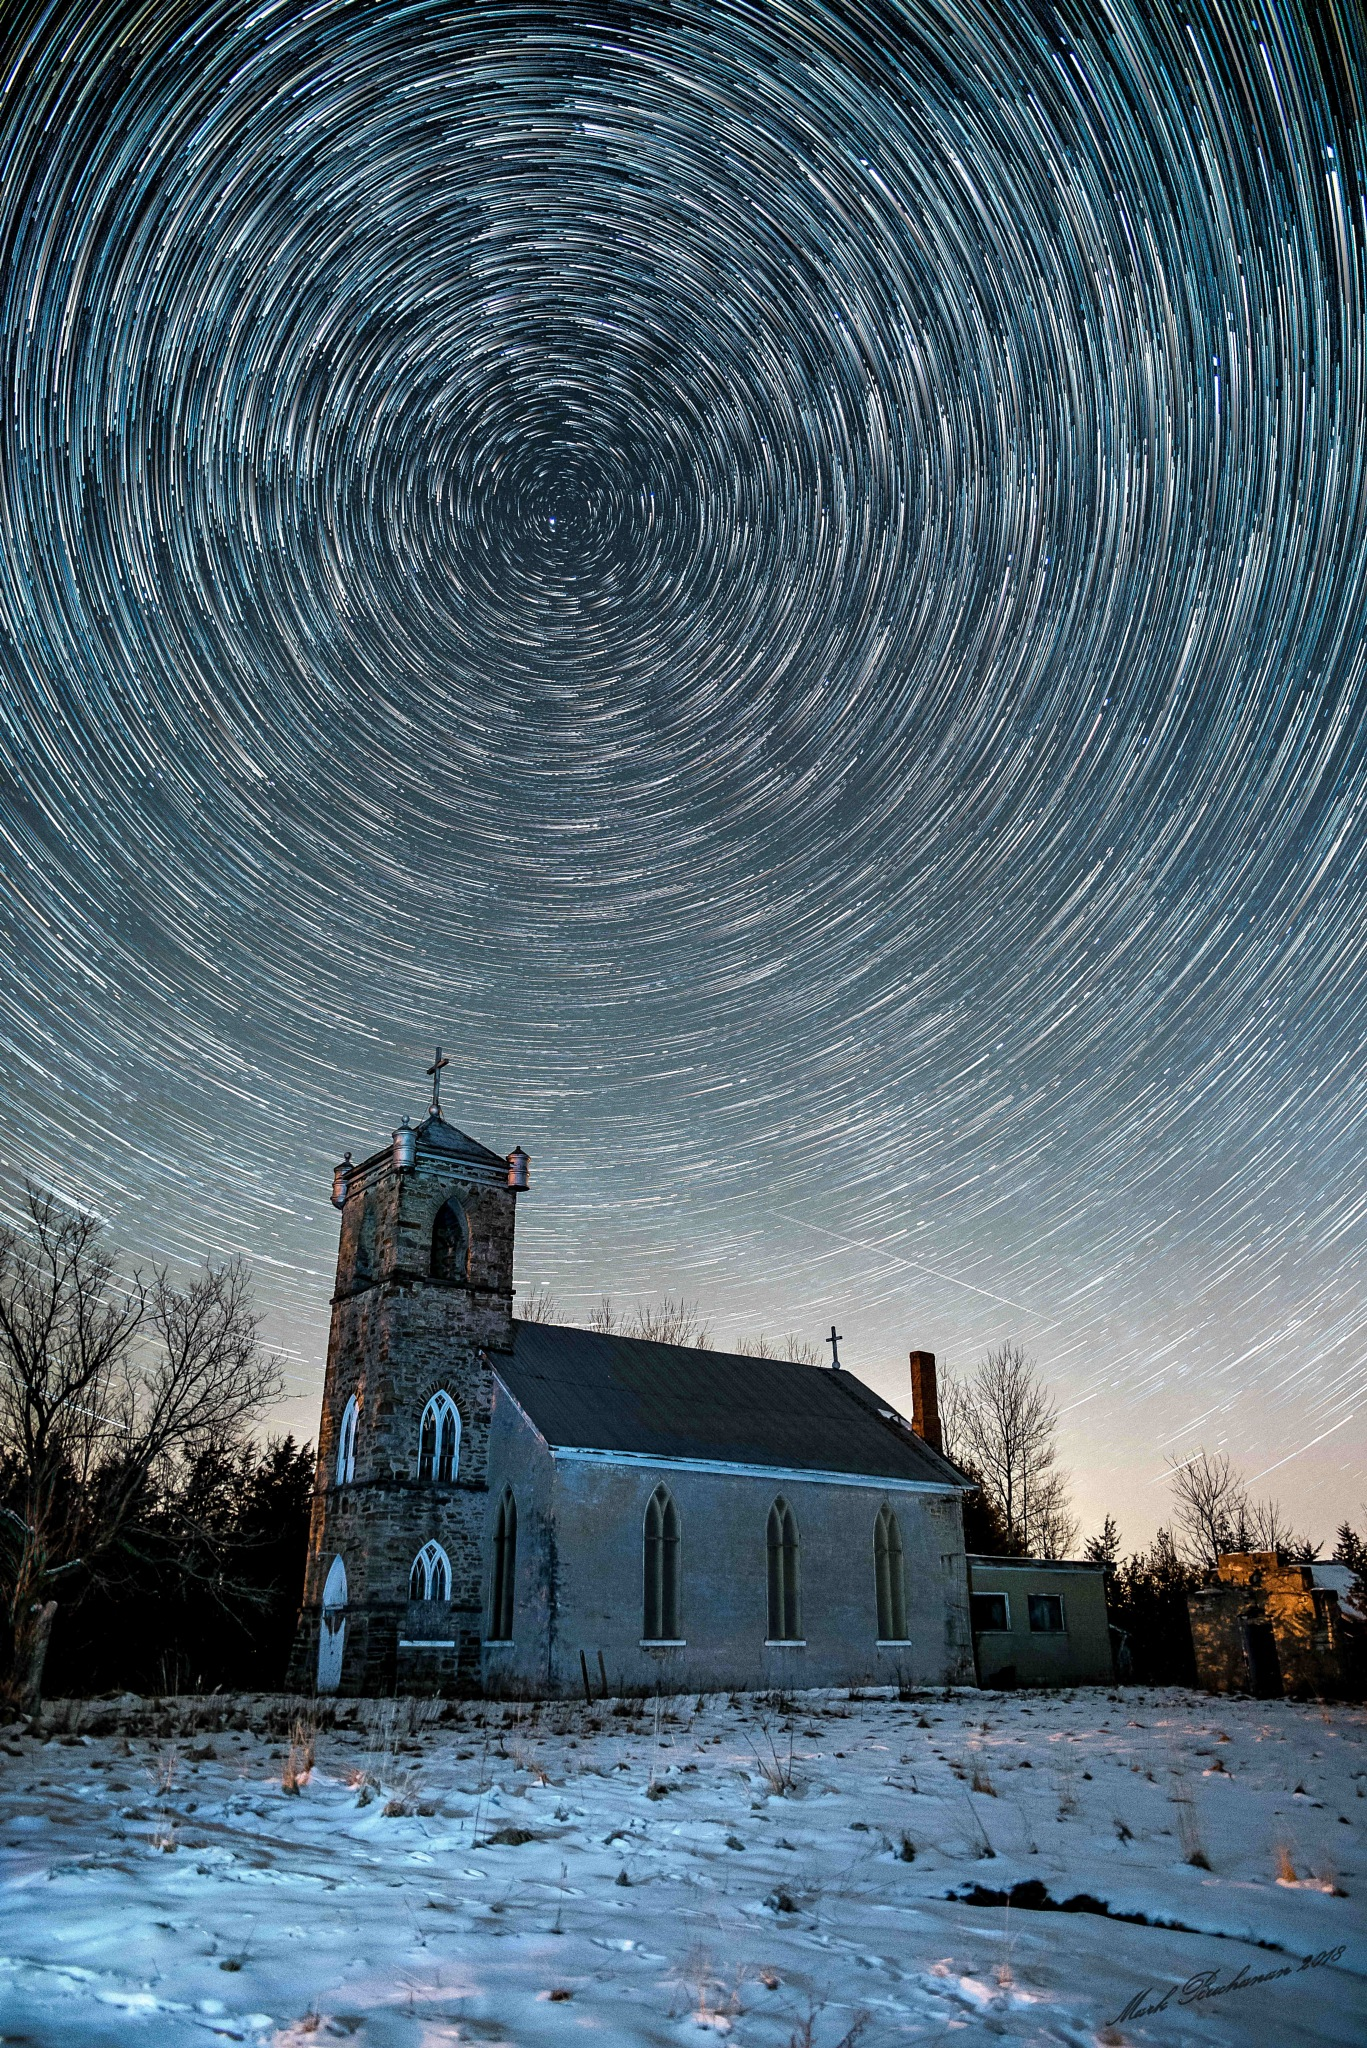 Spin above the church by Mark Buchanan